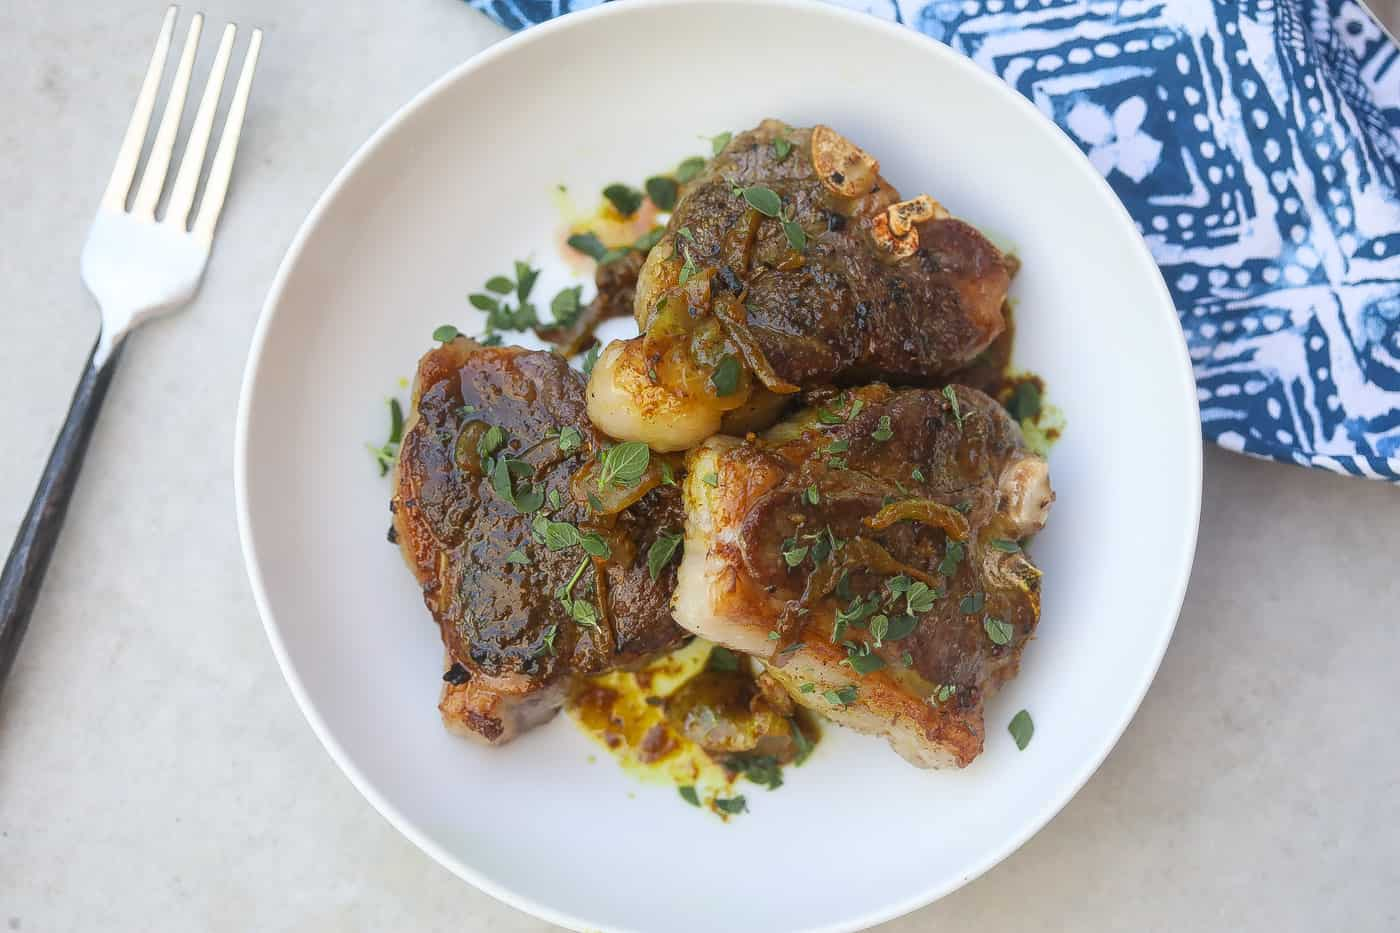 lamb chops on a white plate with spinach and grains